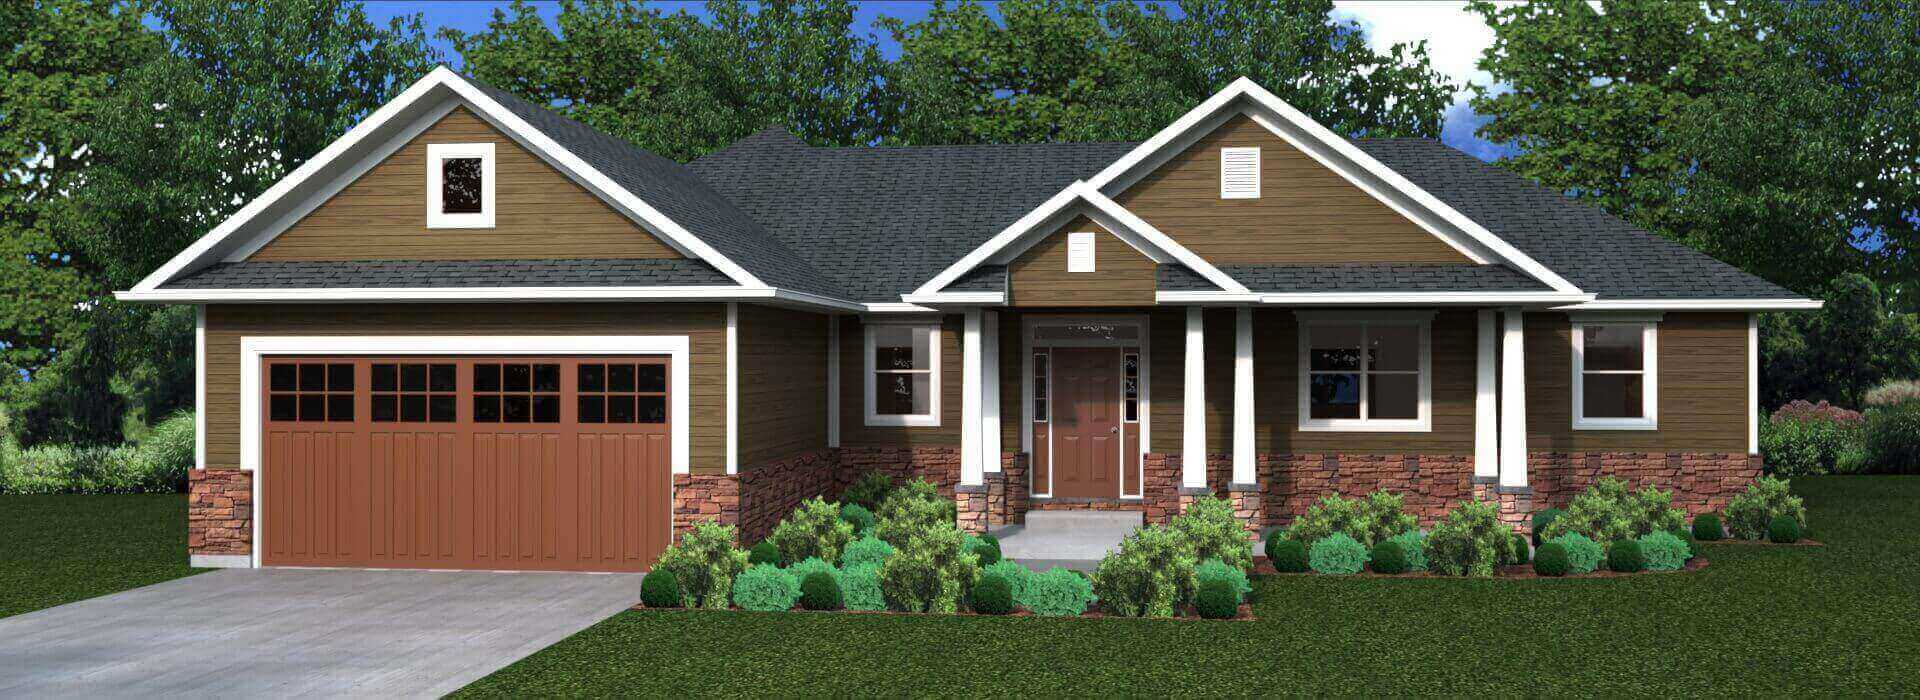 2160 sq.ft. timber mart house 3 bed 2 bath exterior render